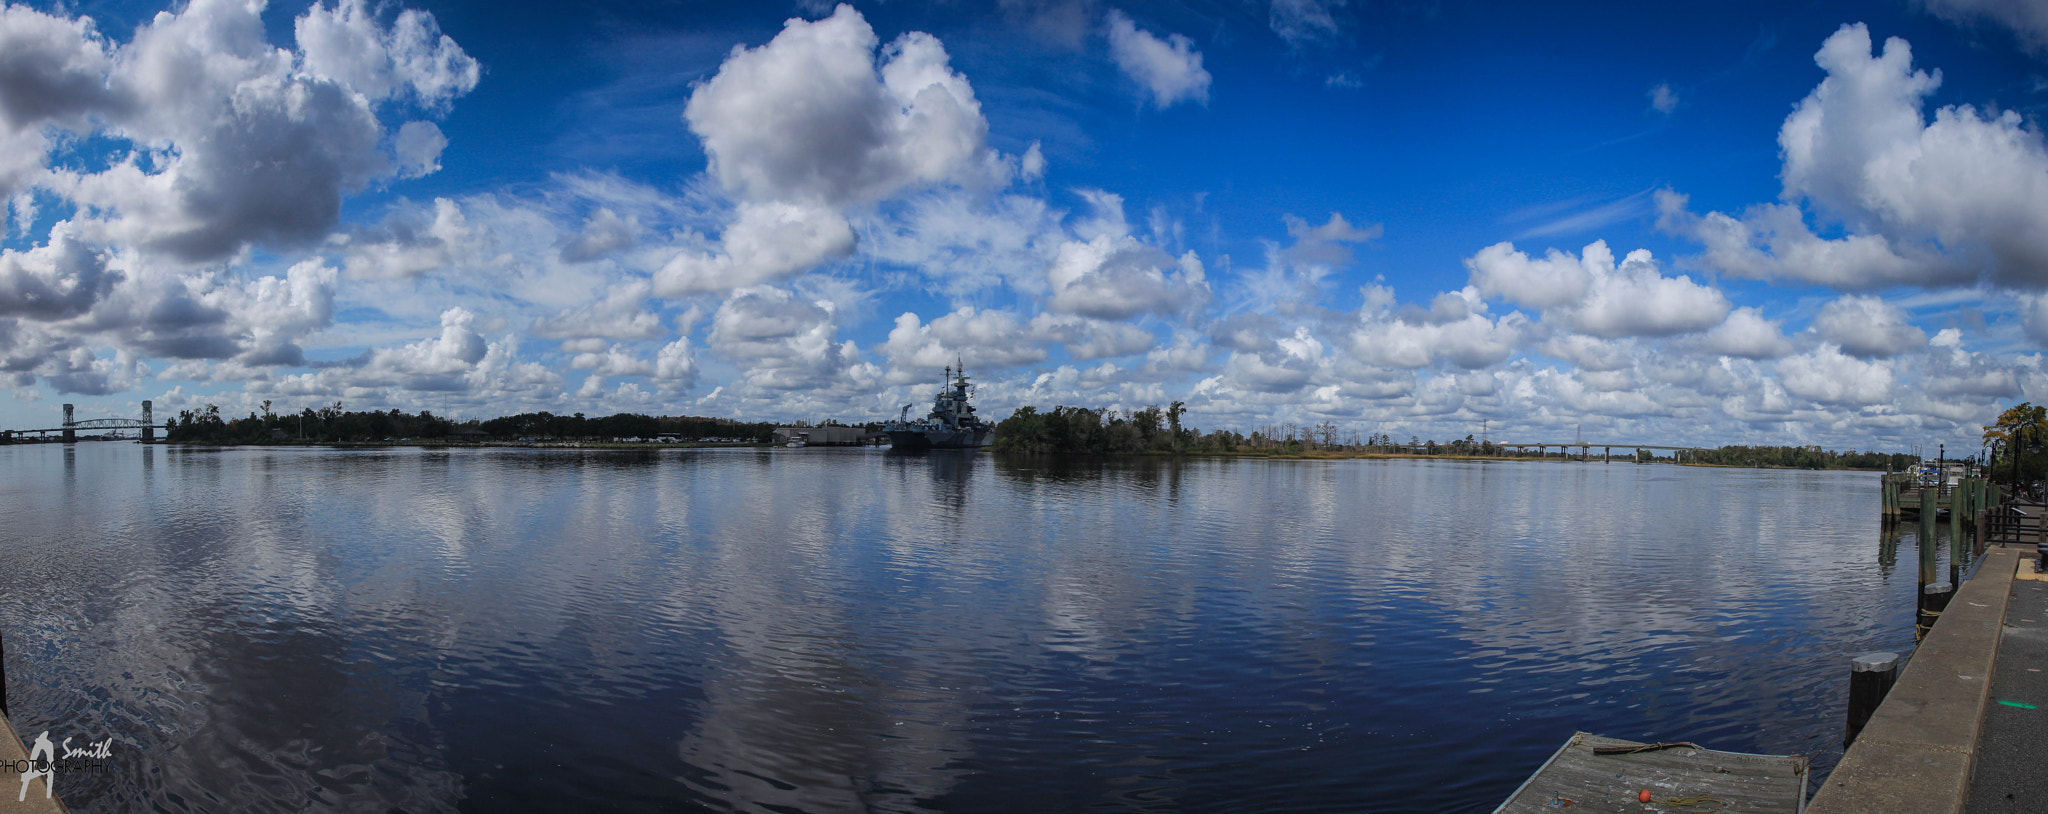 Photograph Wilmington Pano Shot by Drew Smith on 500px